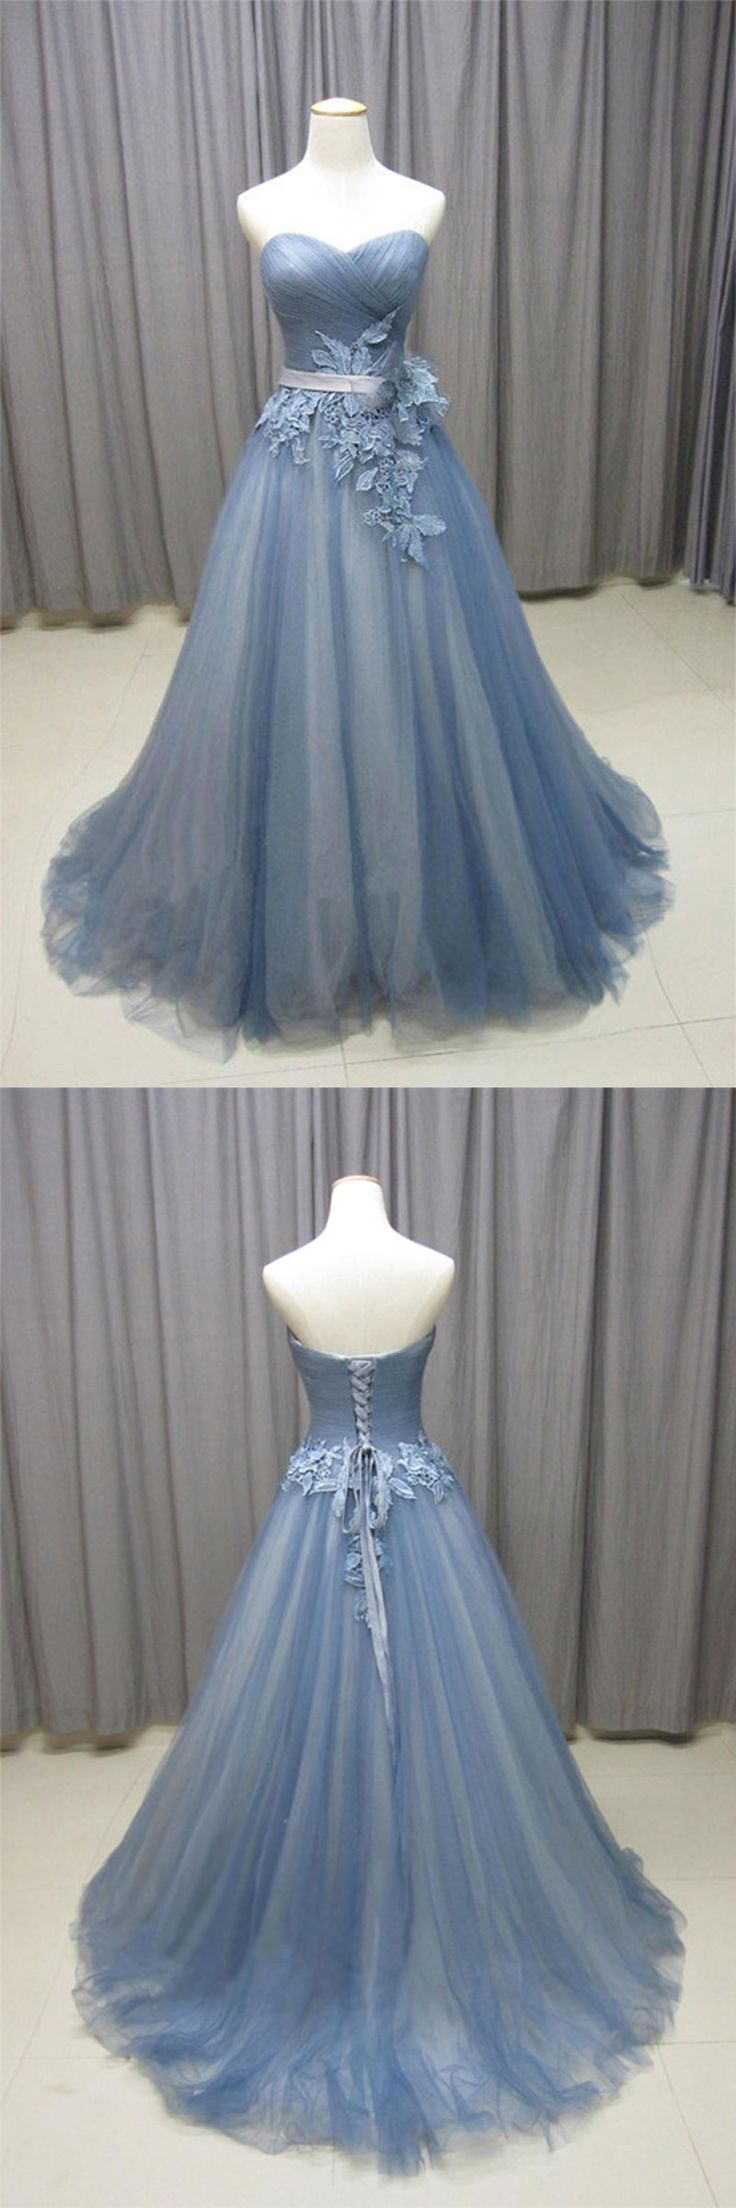 Gray blue sweetheart neck tulle long prom dress, gray evening dress, gray wedding